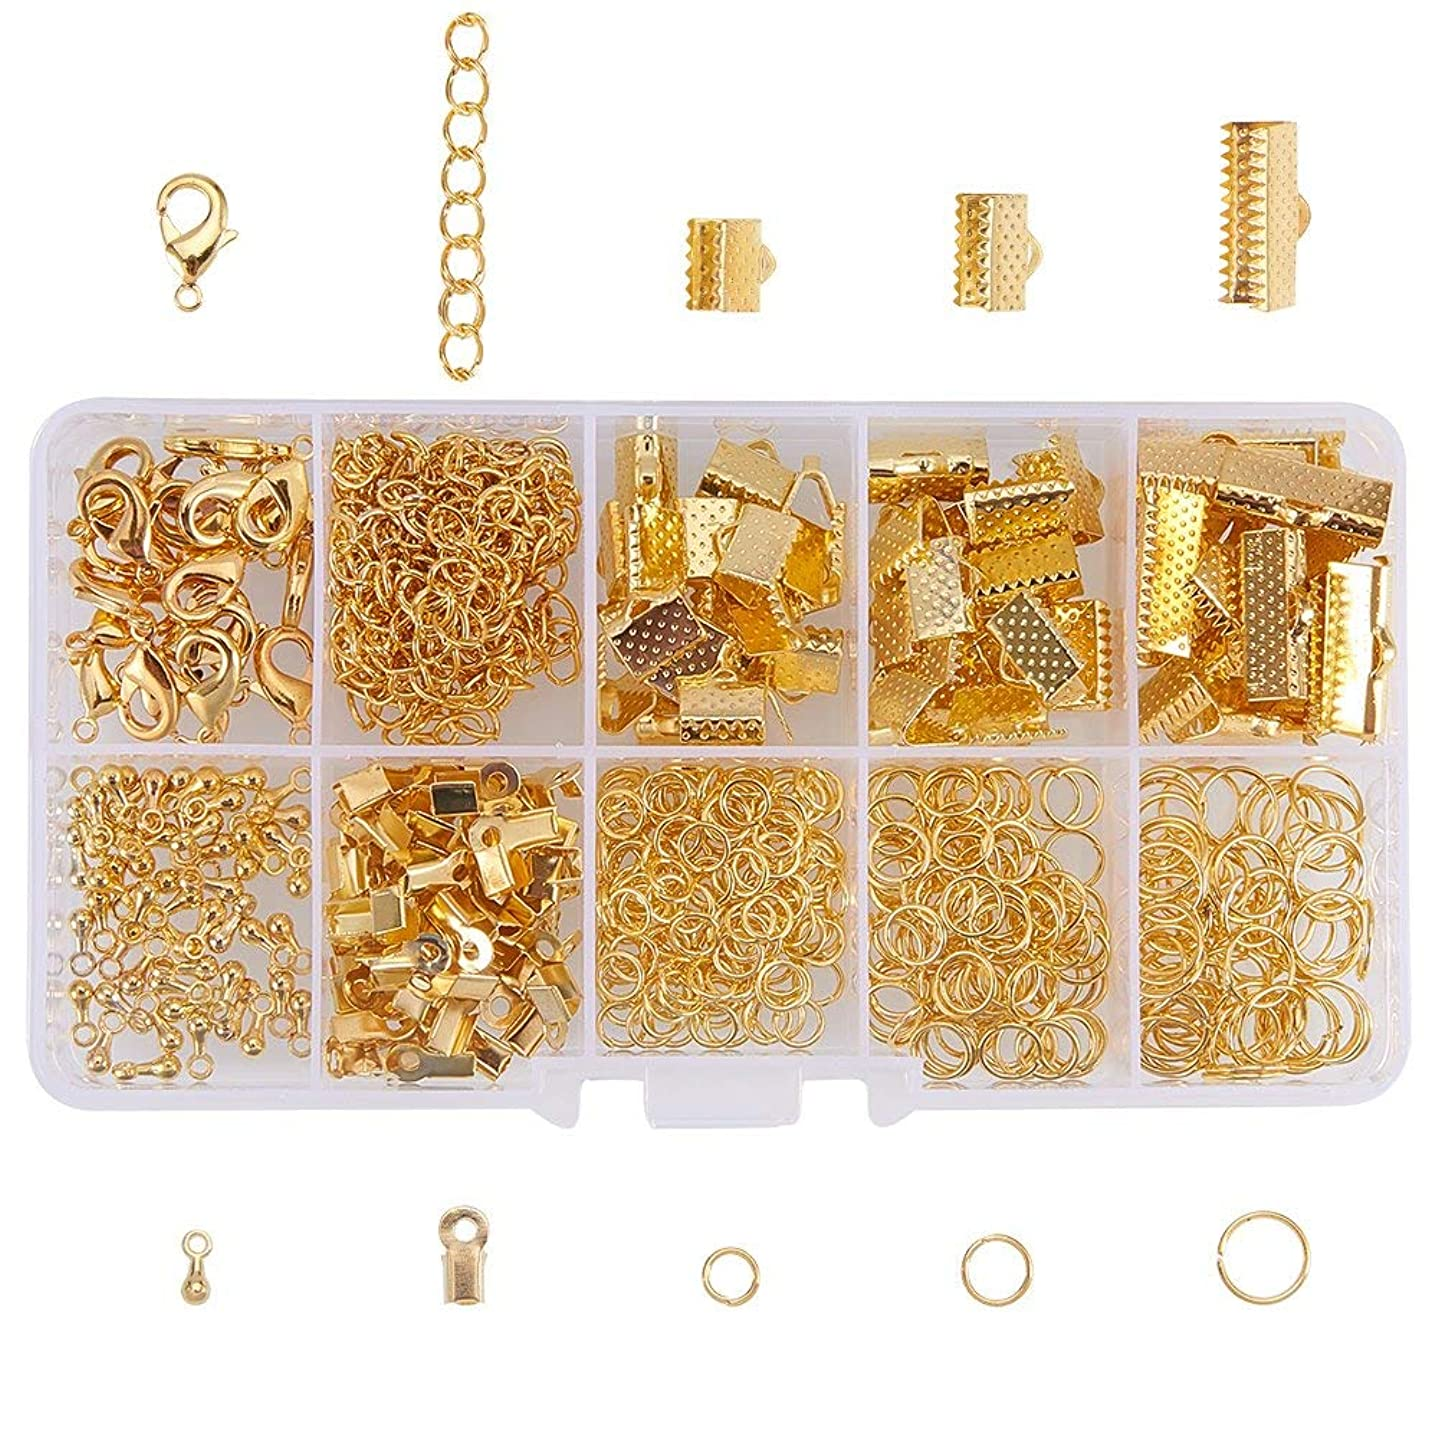 PandaHall Elite About 440 Pcs Jewelry Finding Kits with Ribbon Clamp End, Jump Ring, Fold Over Cord Ends, Lobster Claw Clasps, Extender Chain, Drop Ends for Jewelry Making Golden